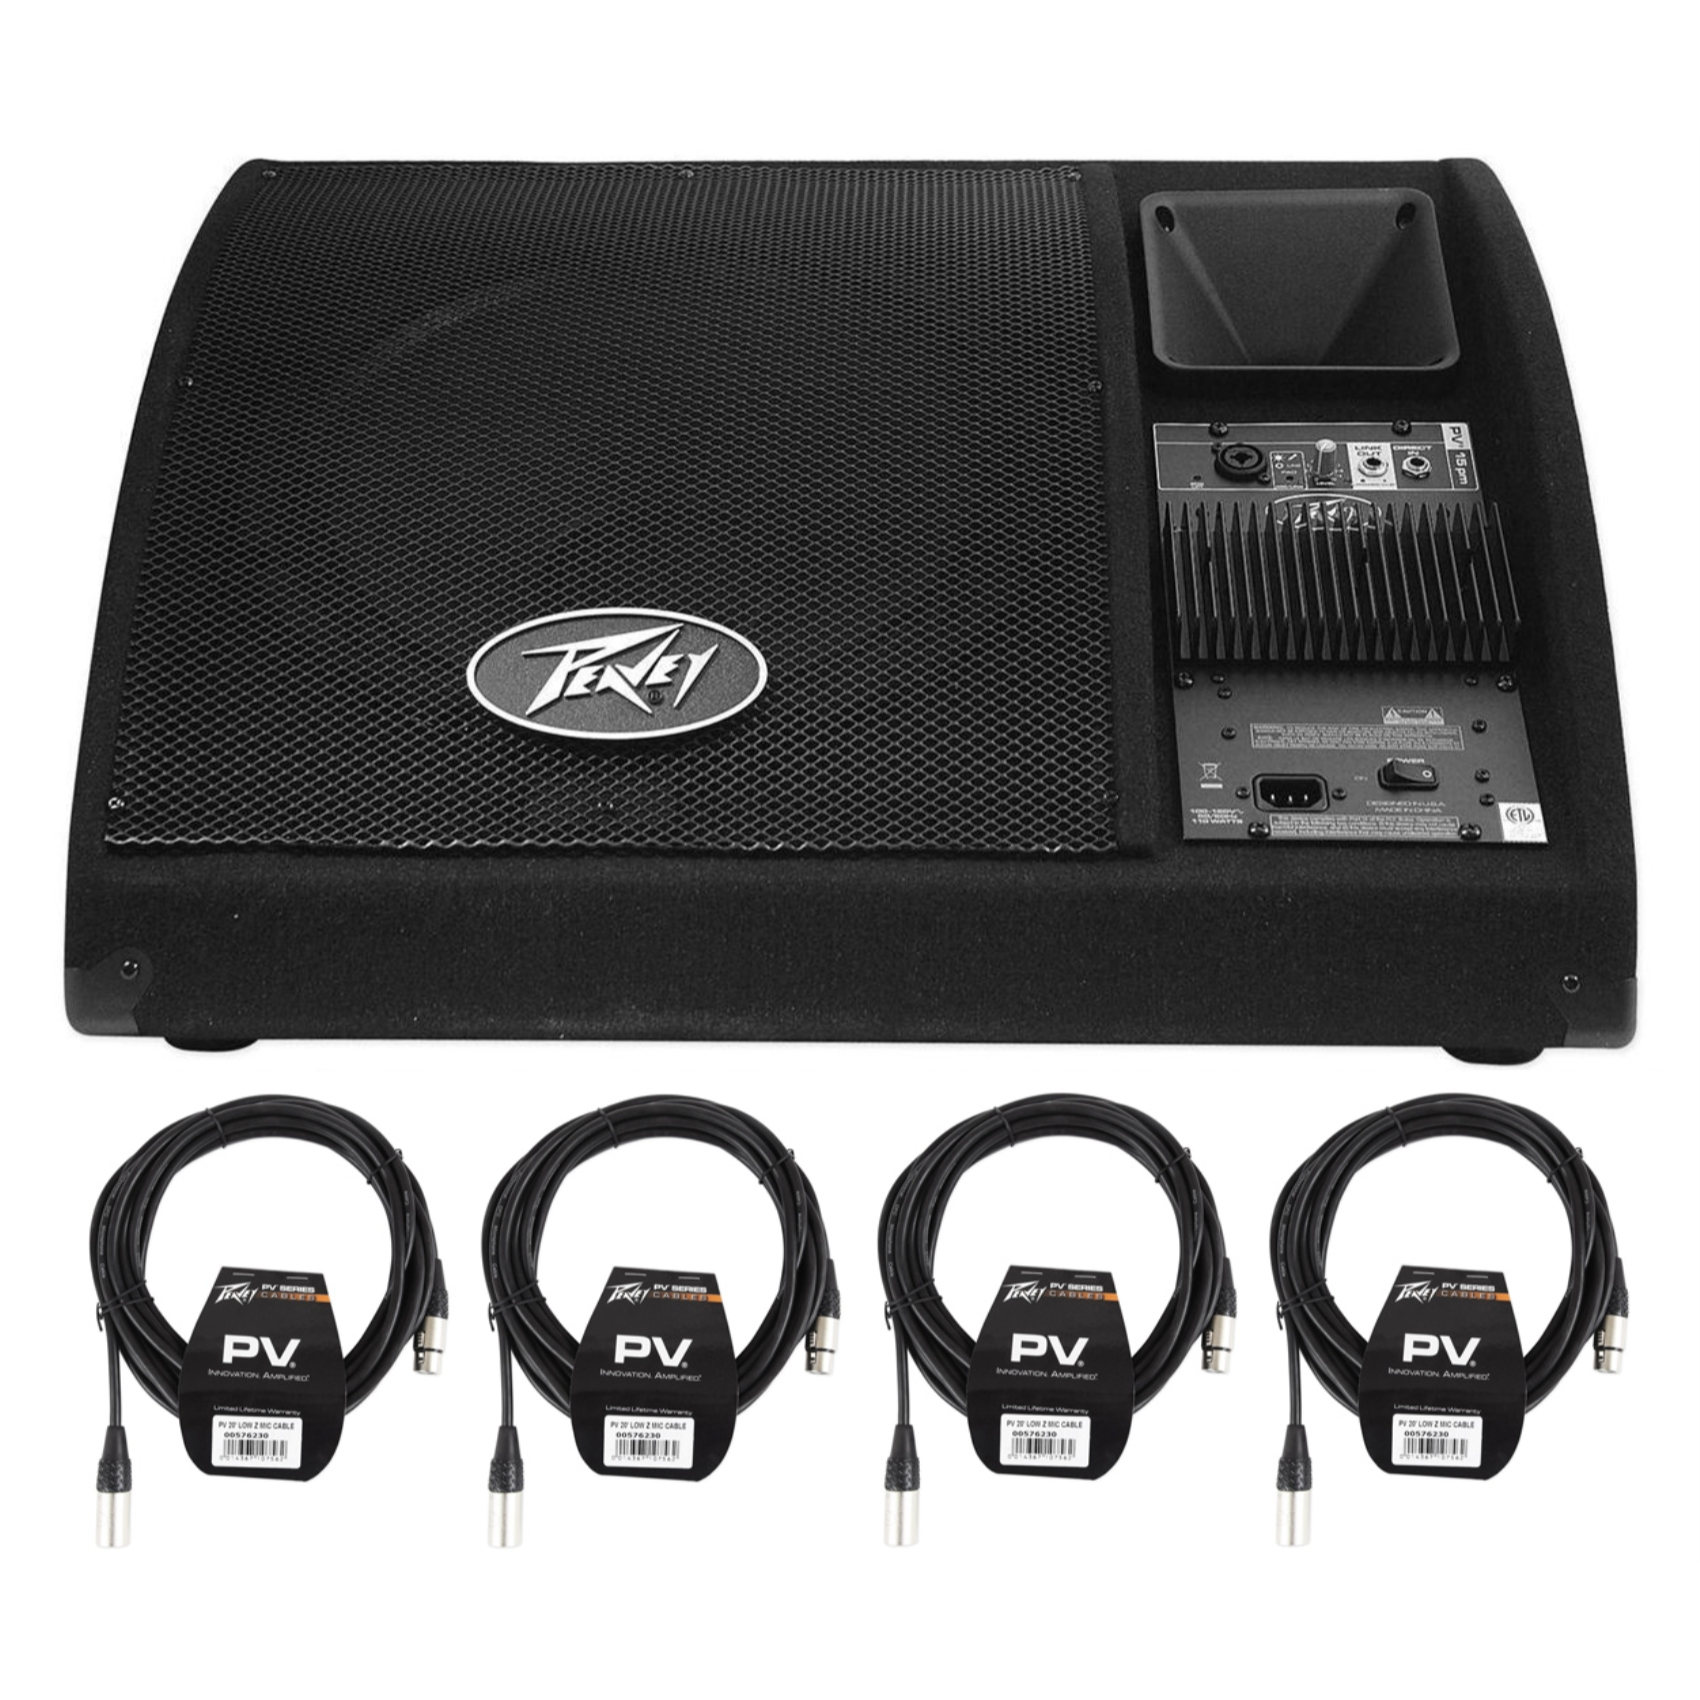 """Peavey PV 15PM 15"""" Bi-Amplified Powered Floor Monitors PV15PM + (4) XLR Cables by Peavey"""